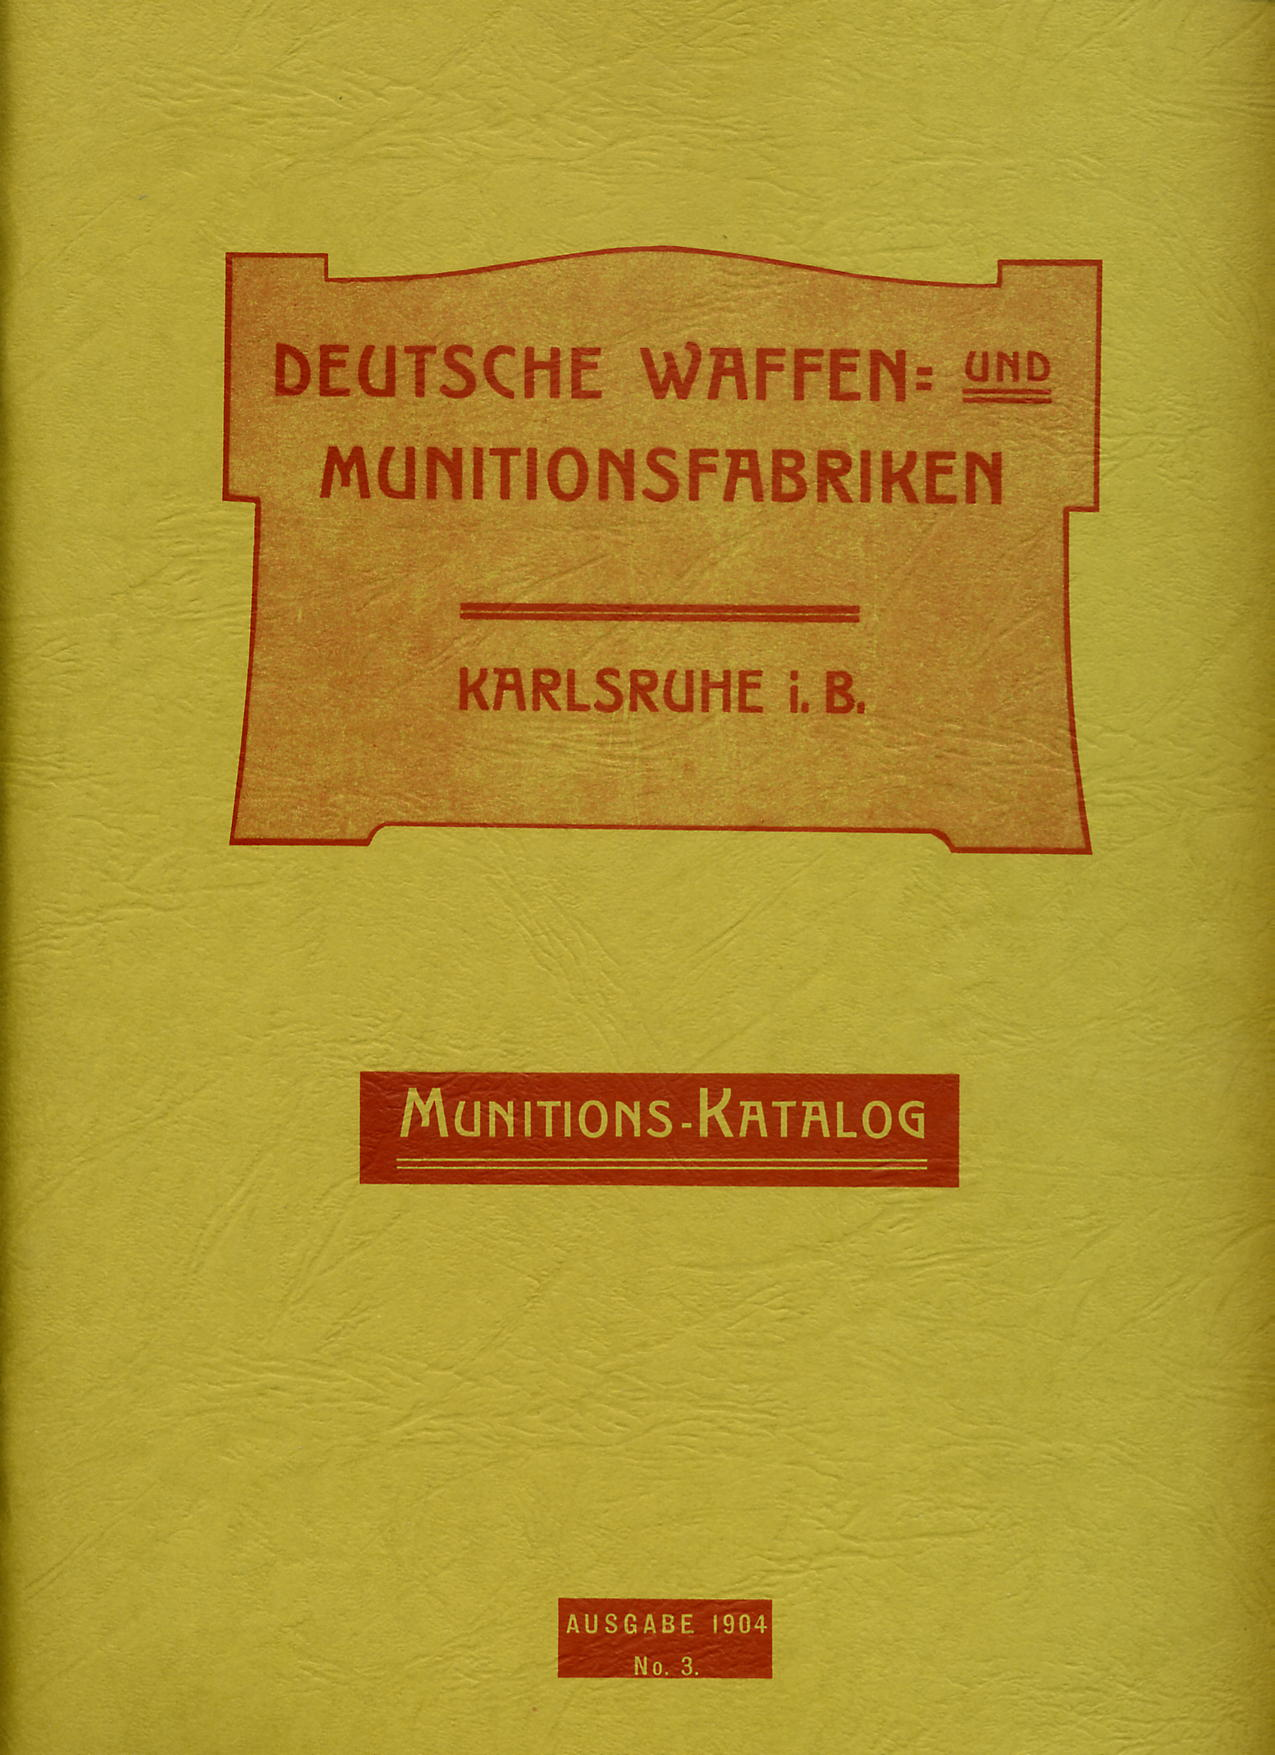 DWM Ammuntion Catalogue Circa 1900. Ref. #W12